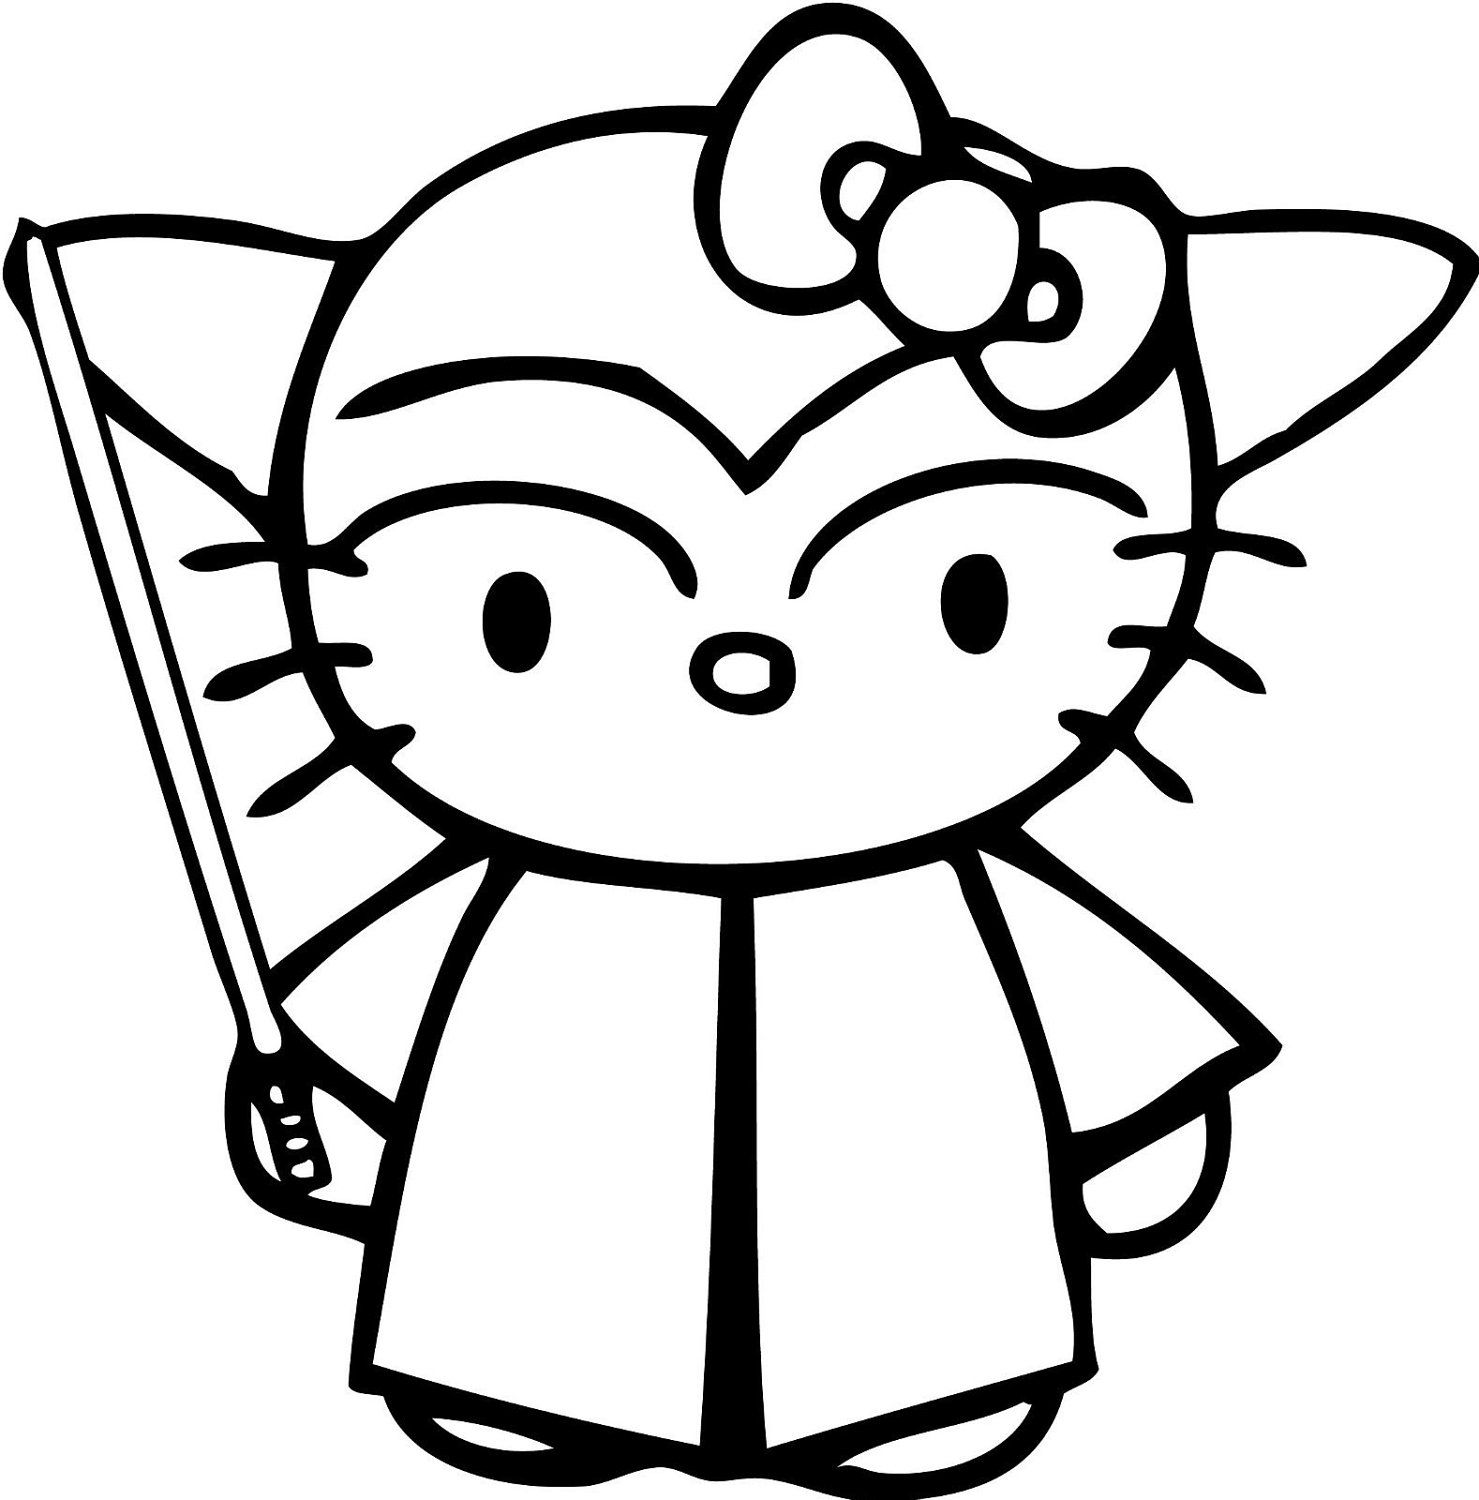 hello kitty coloring pages wallpapers for ipad   Pick Color Star Wars YODA Hello Kitty Vinyl Decal Sticker ...